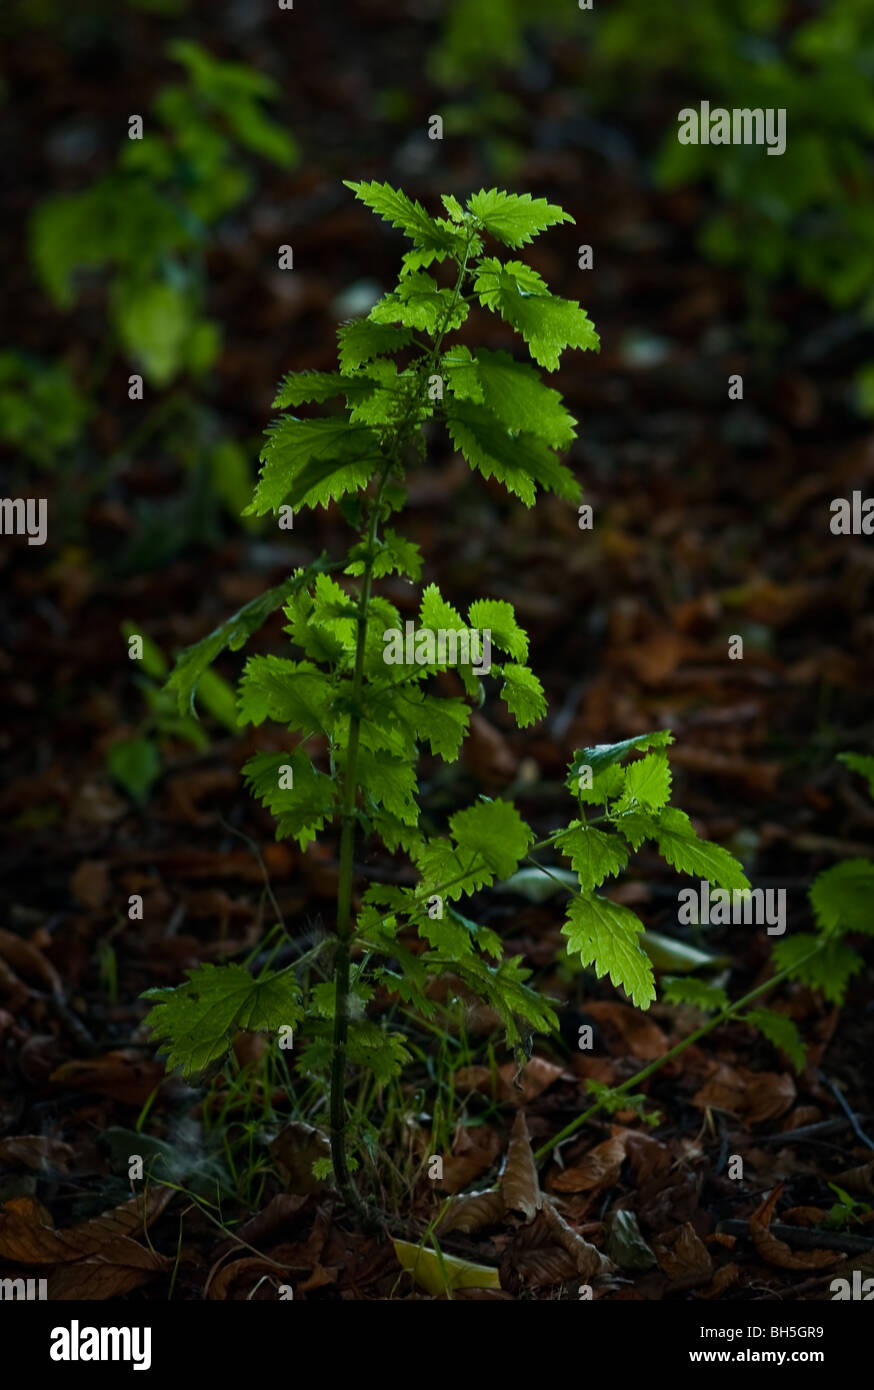 A nettle in a forest clearing - Stock Image